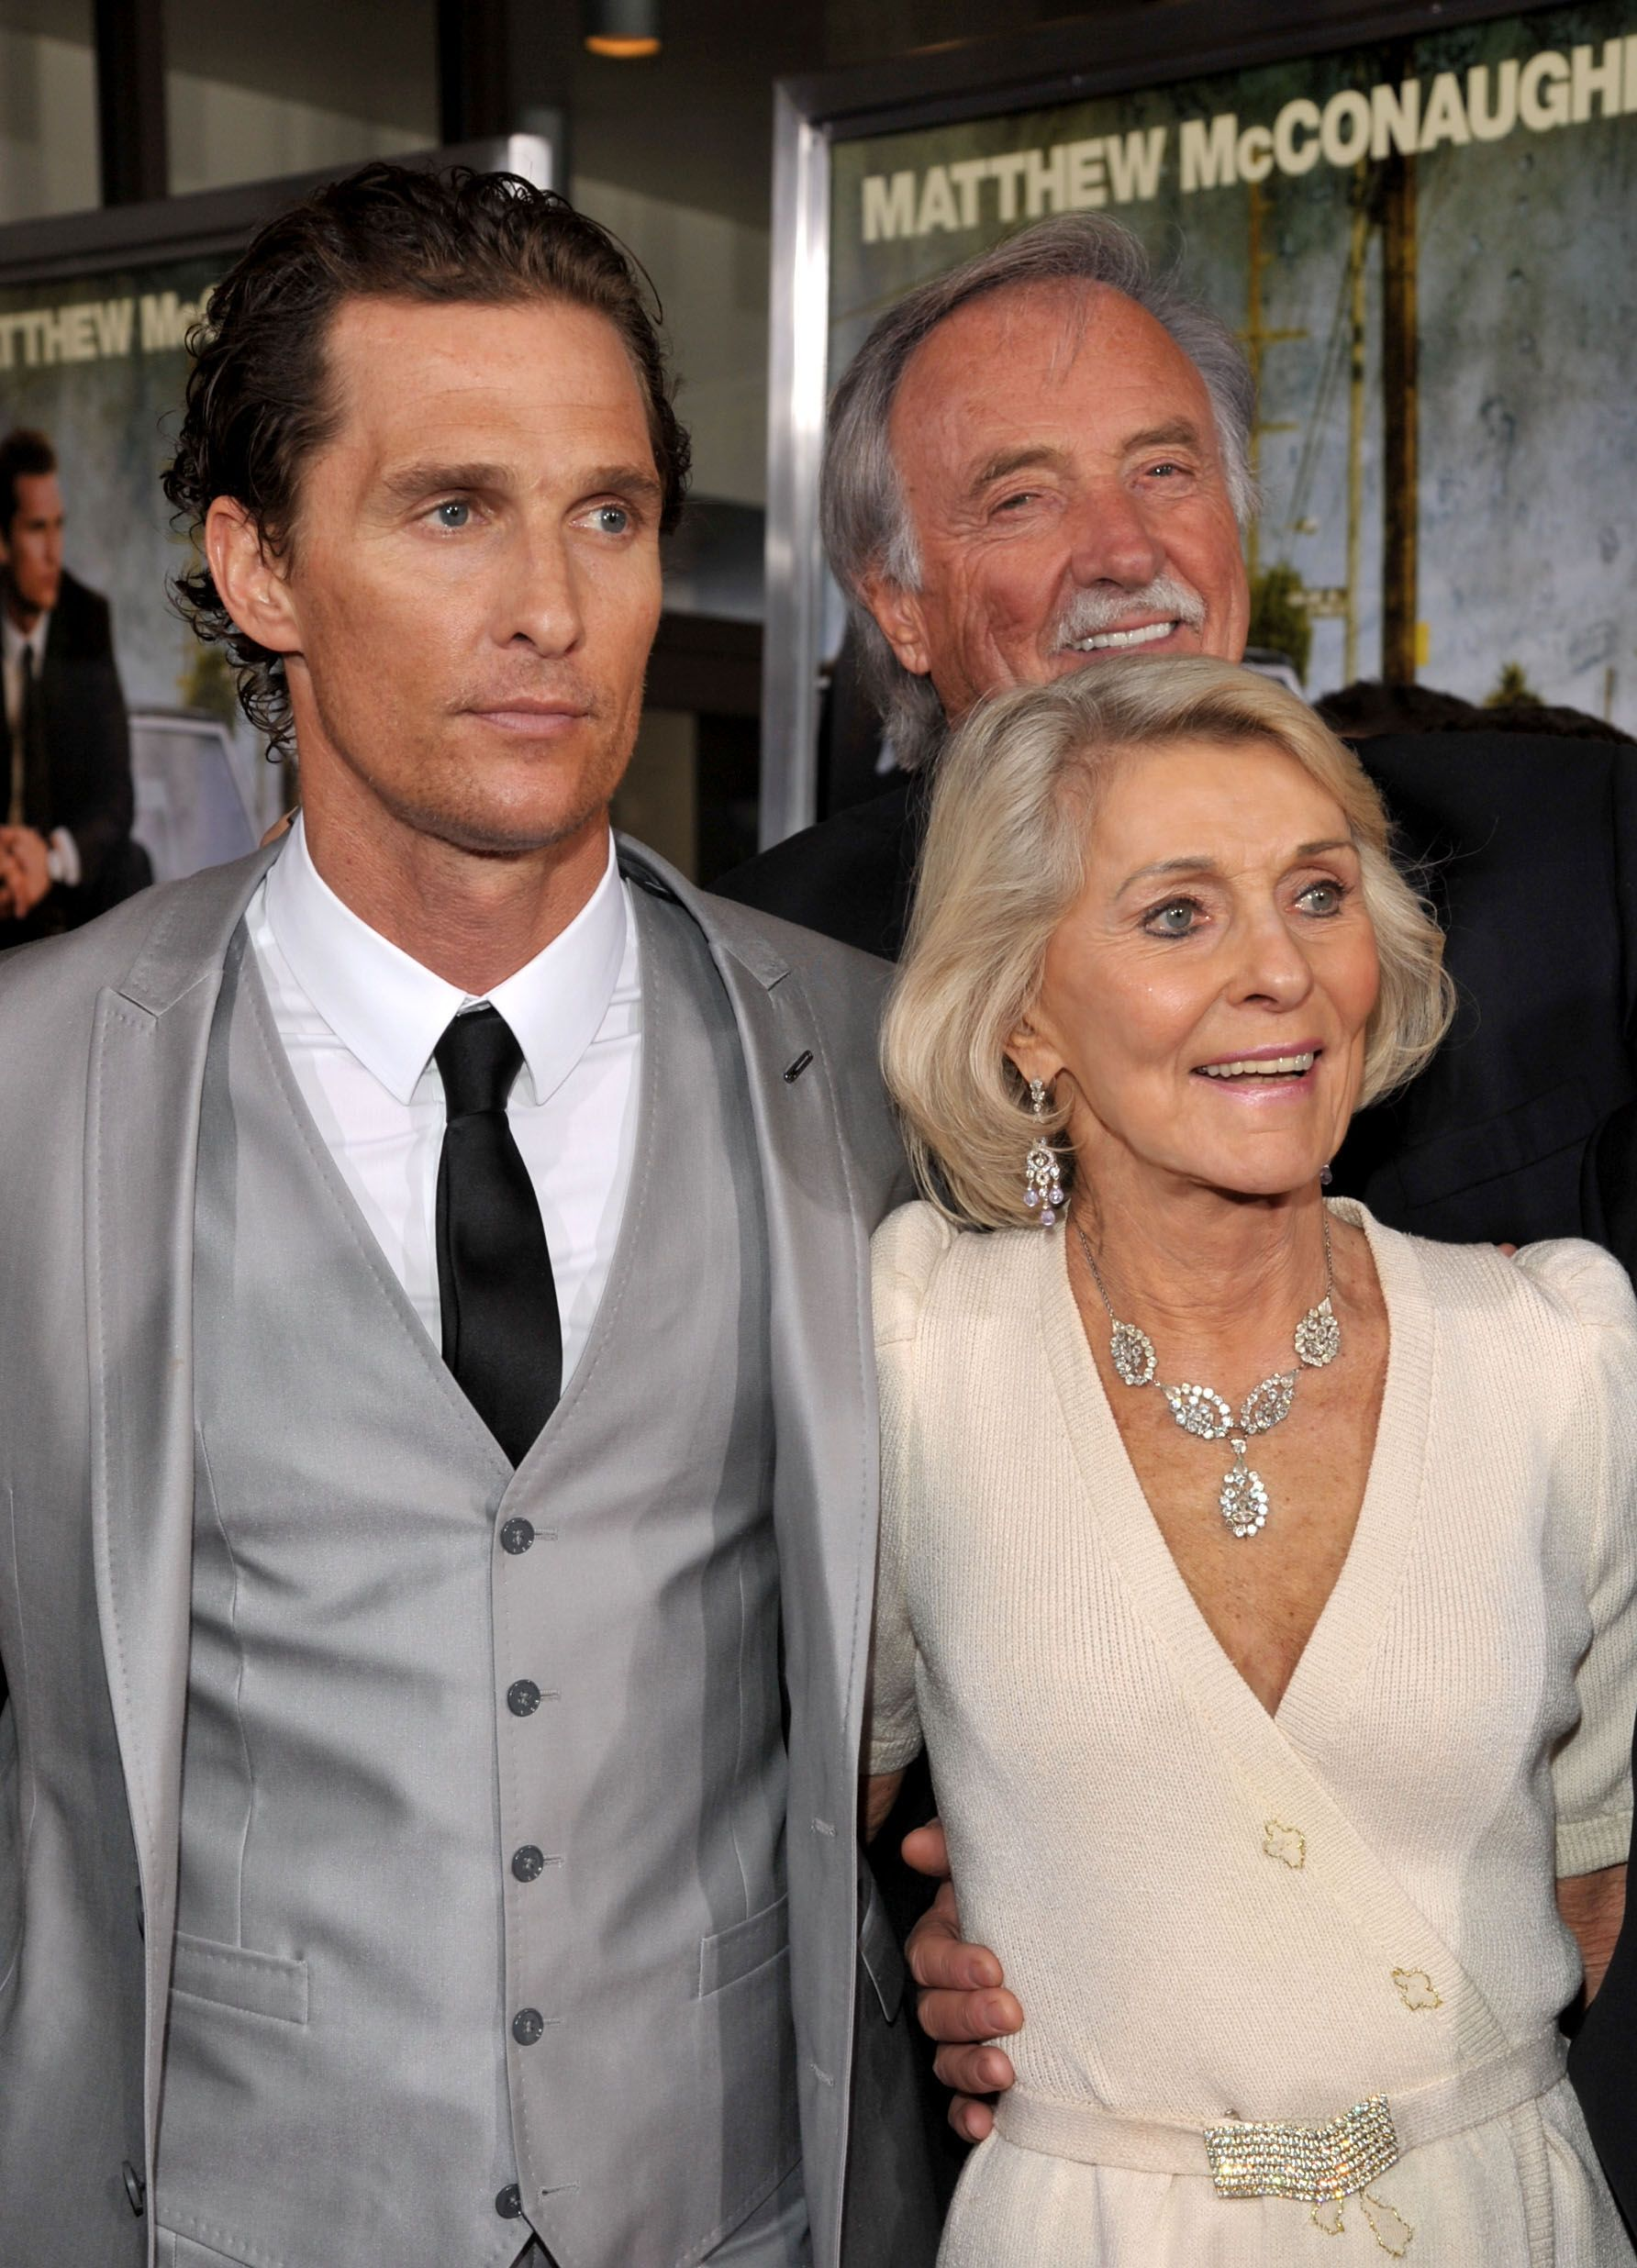 """Matthew McConaughey, and parents Mary Kathlene McCabe, and James Donald McConaughey at """"The Lincoln Lawyer"""" Los Angeles screening on March 10, 2011, in Hollywood, California 